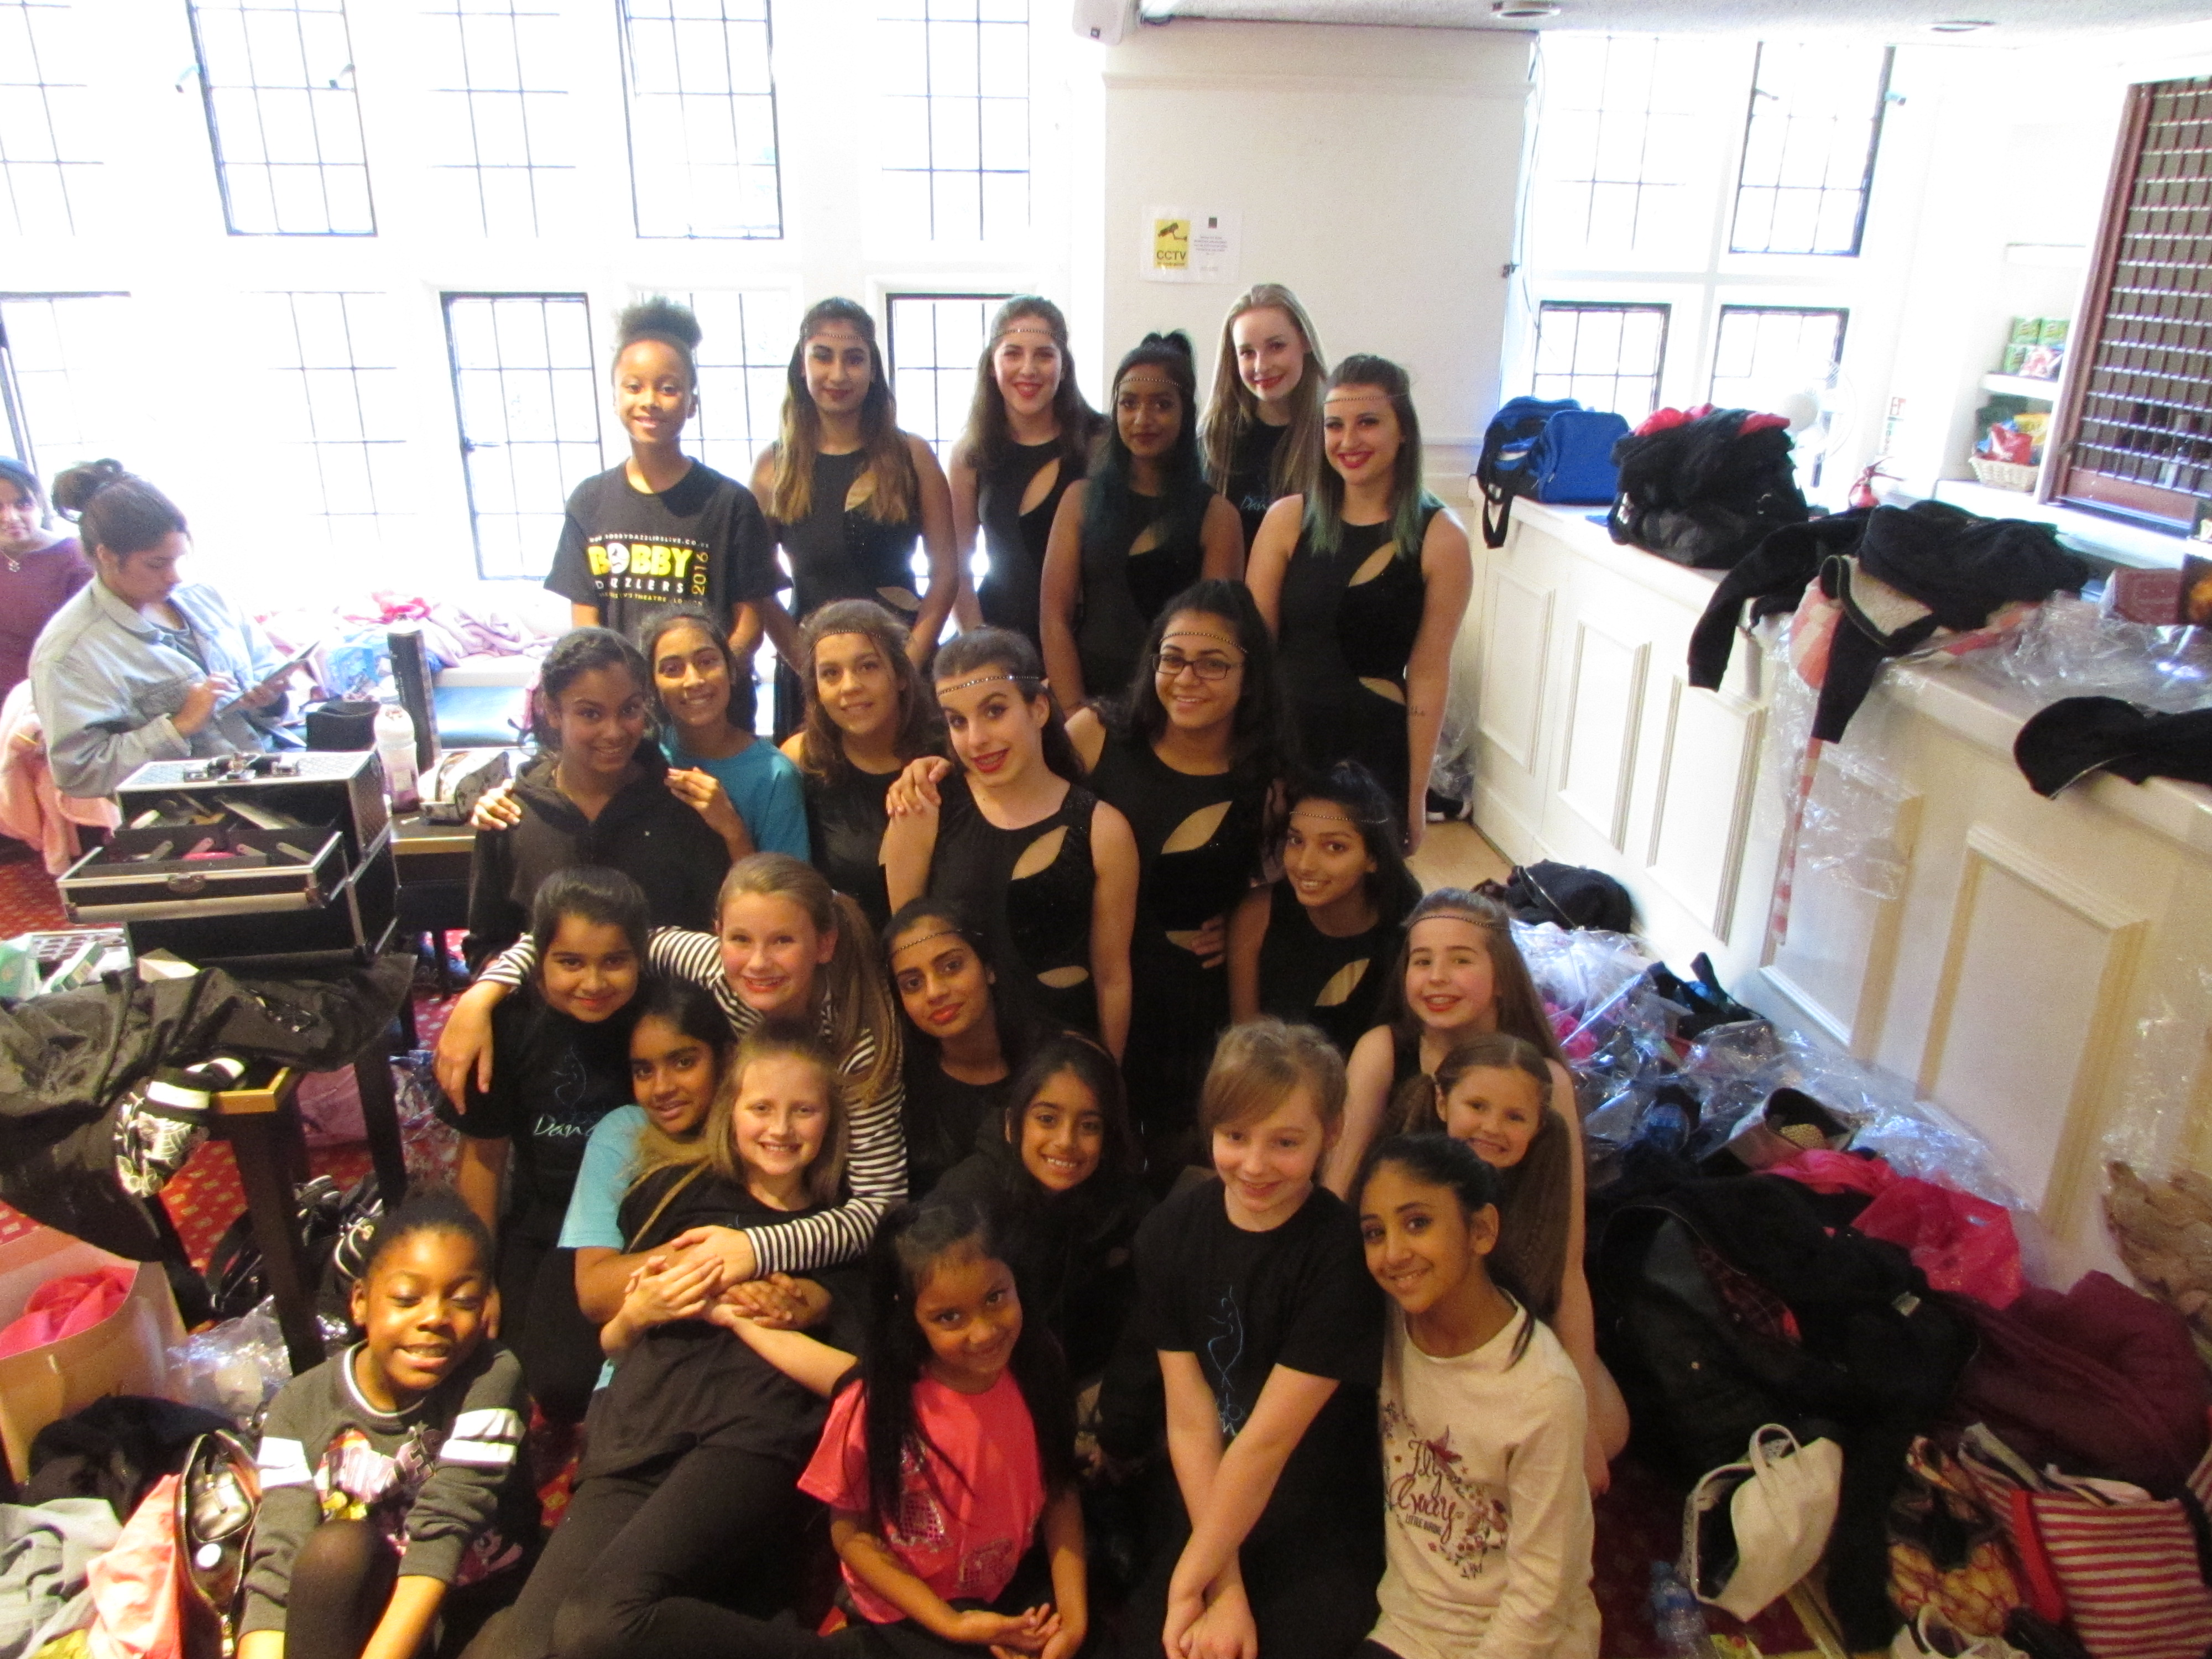 babel dance Archives - Babel Dance School of Dance